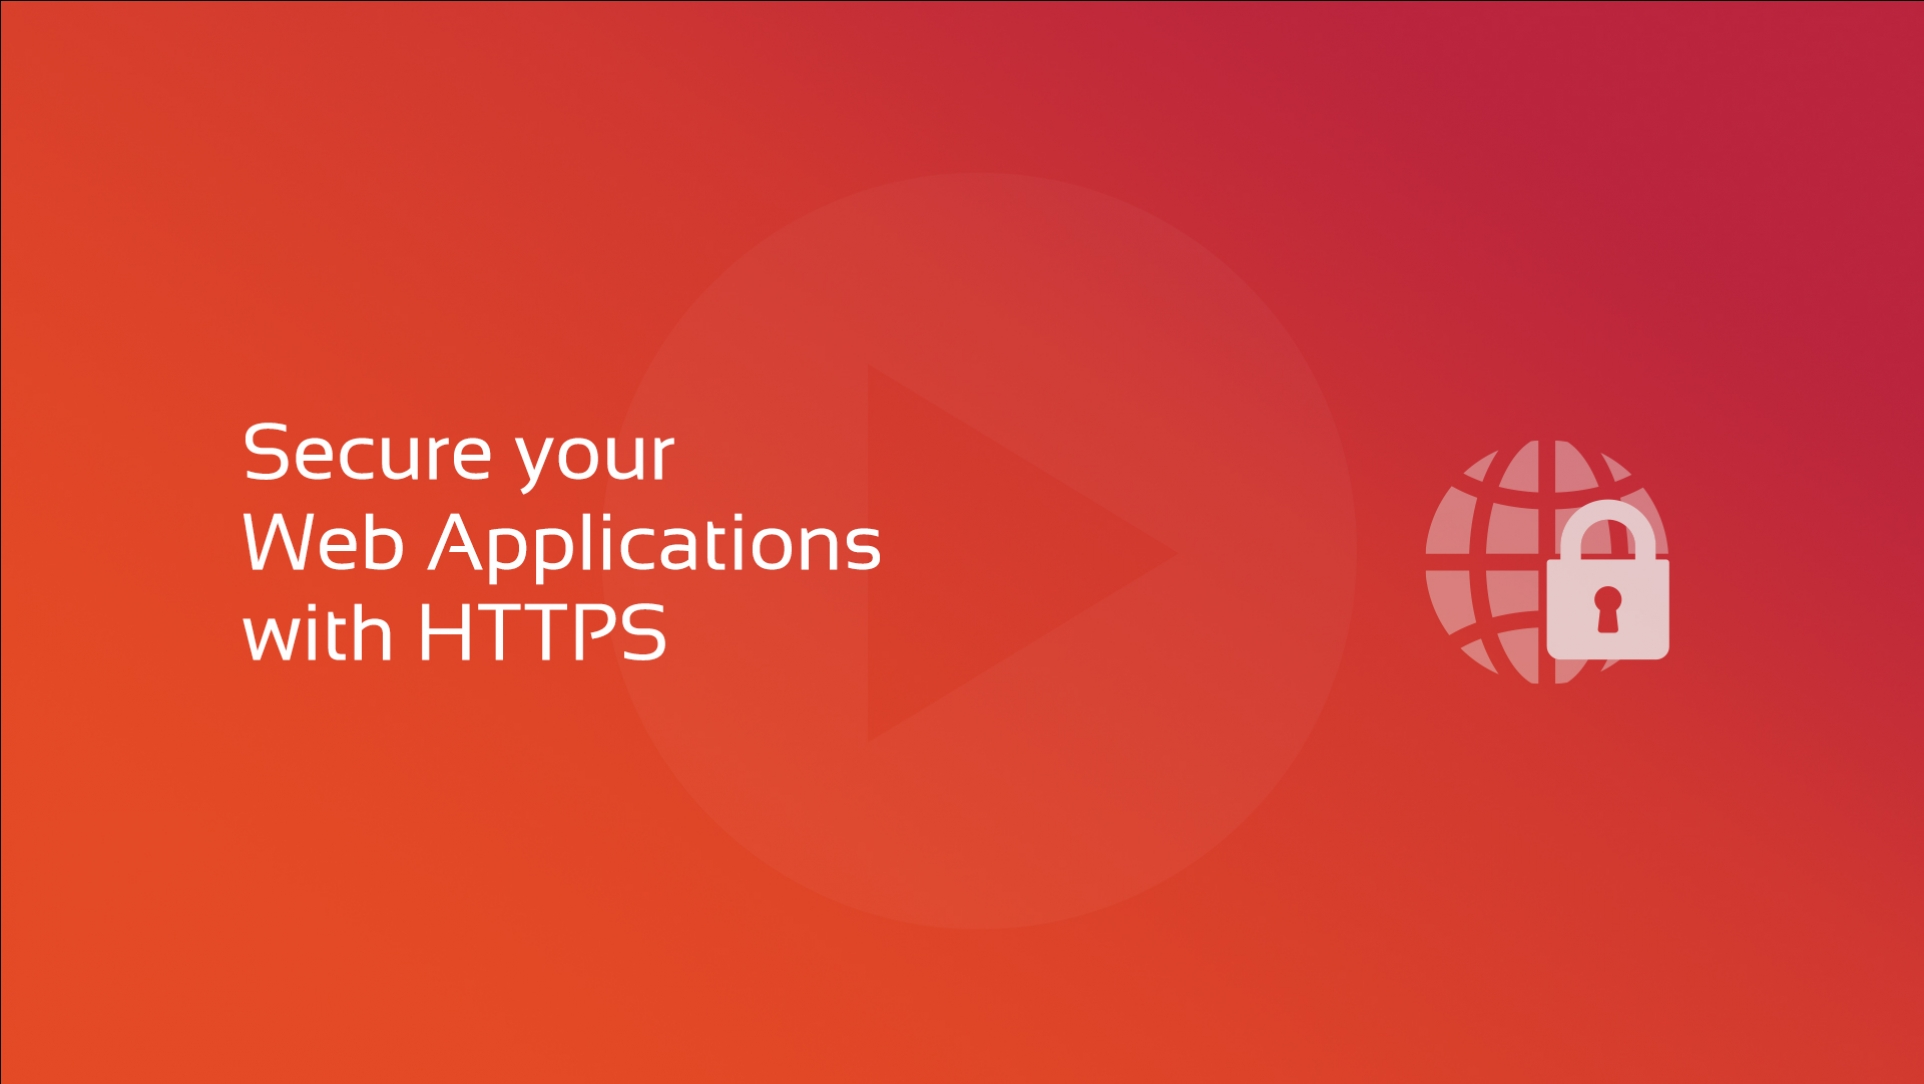 2020-01-31 Secure your web applications with HTTPS OG